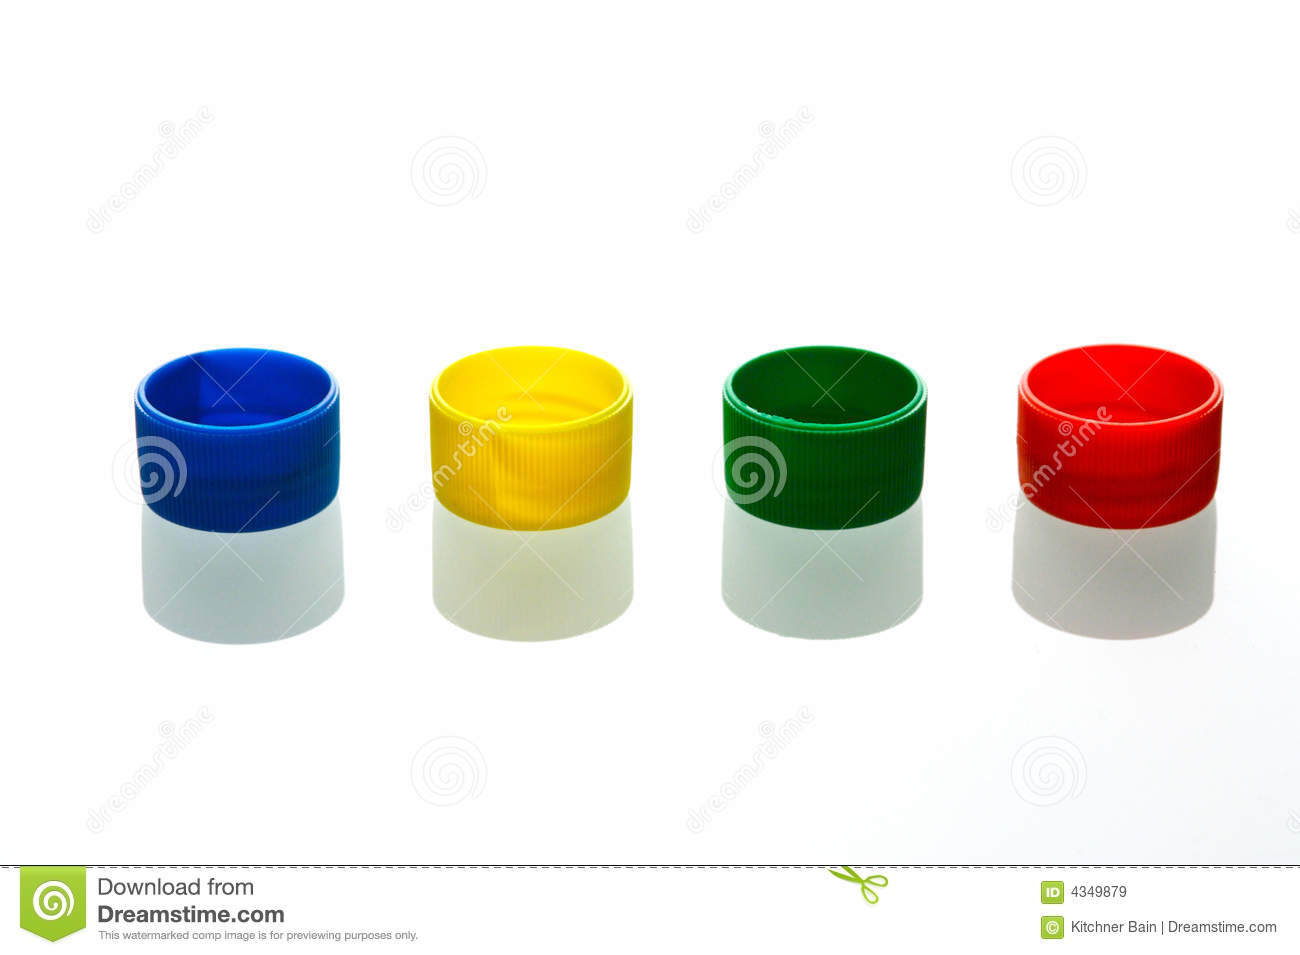 Bottle Tops stock image  Image of object, playing, school - 4349879